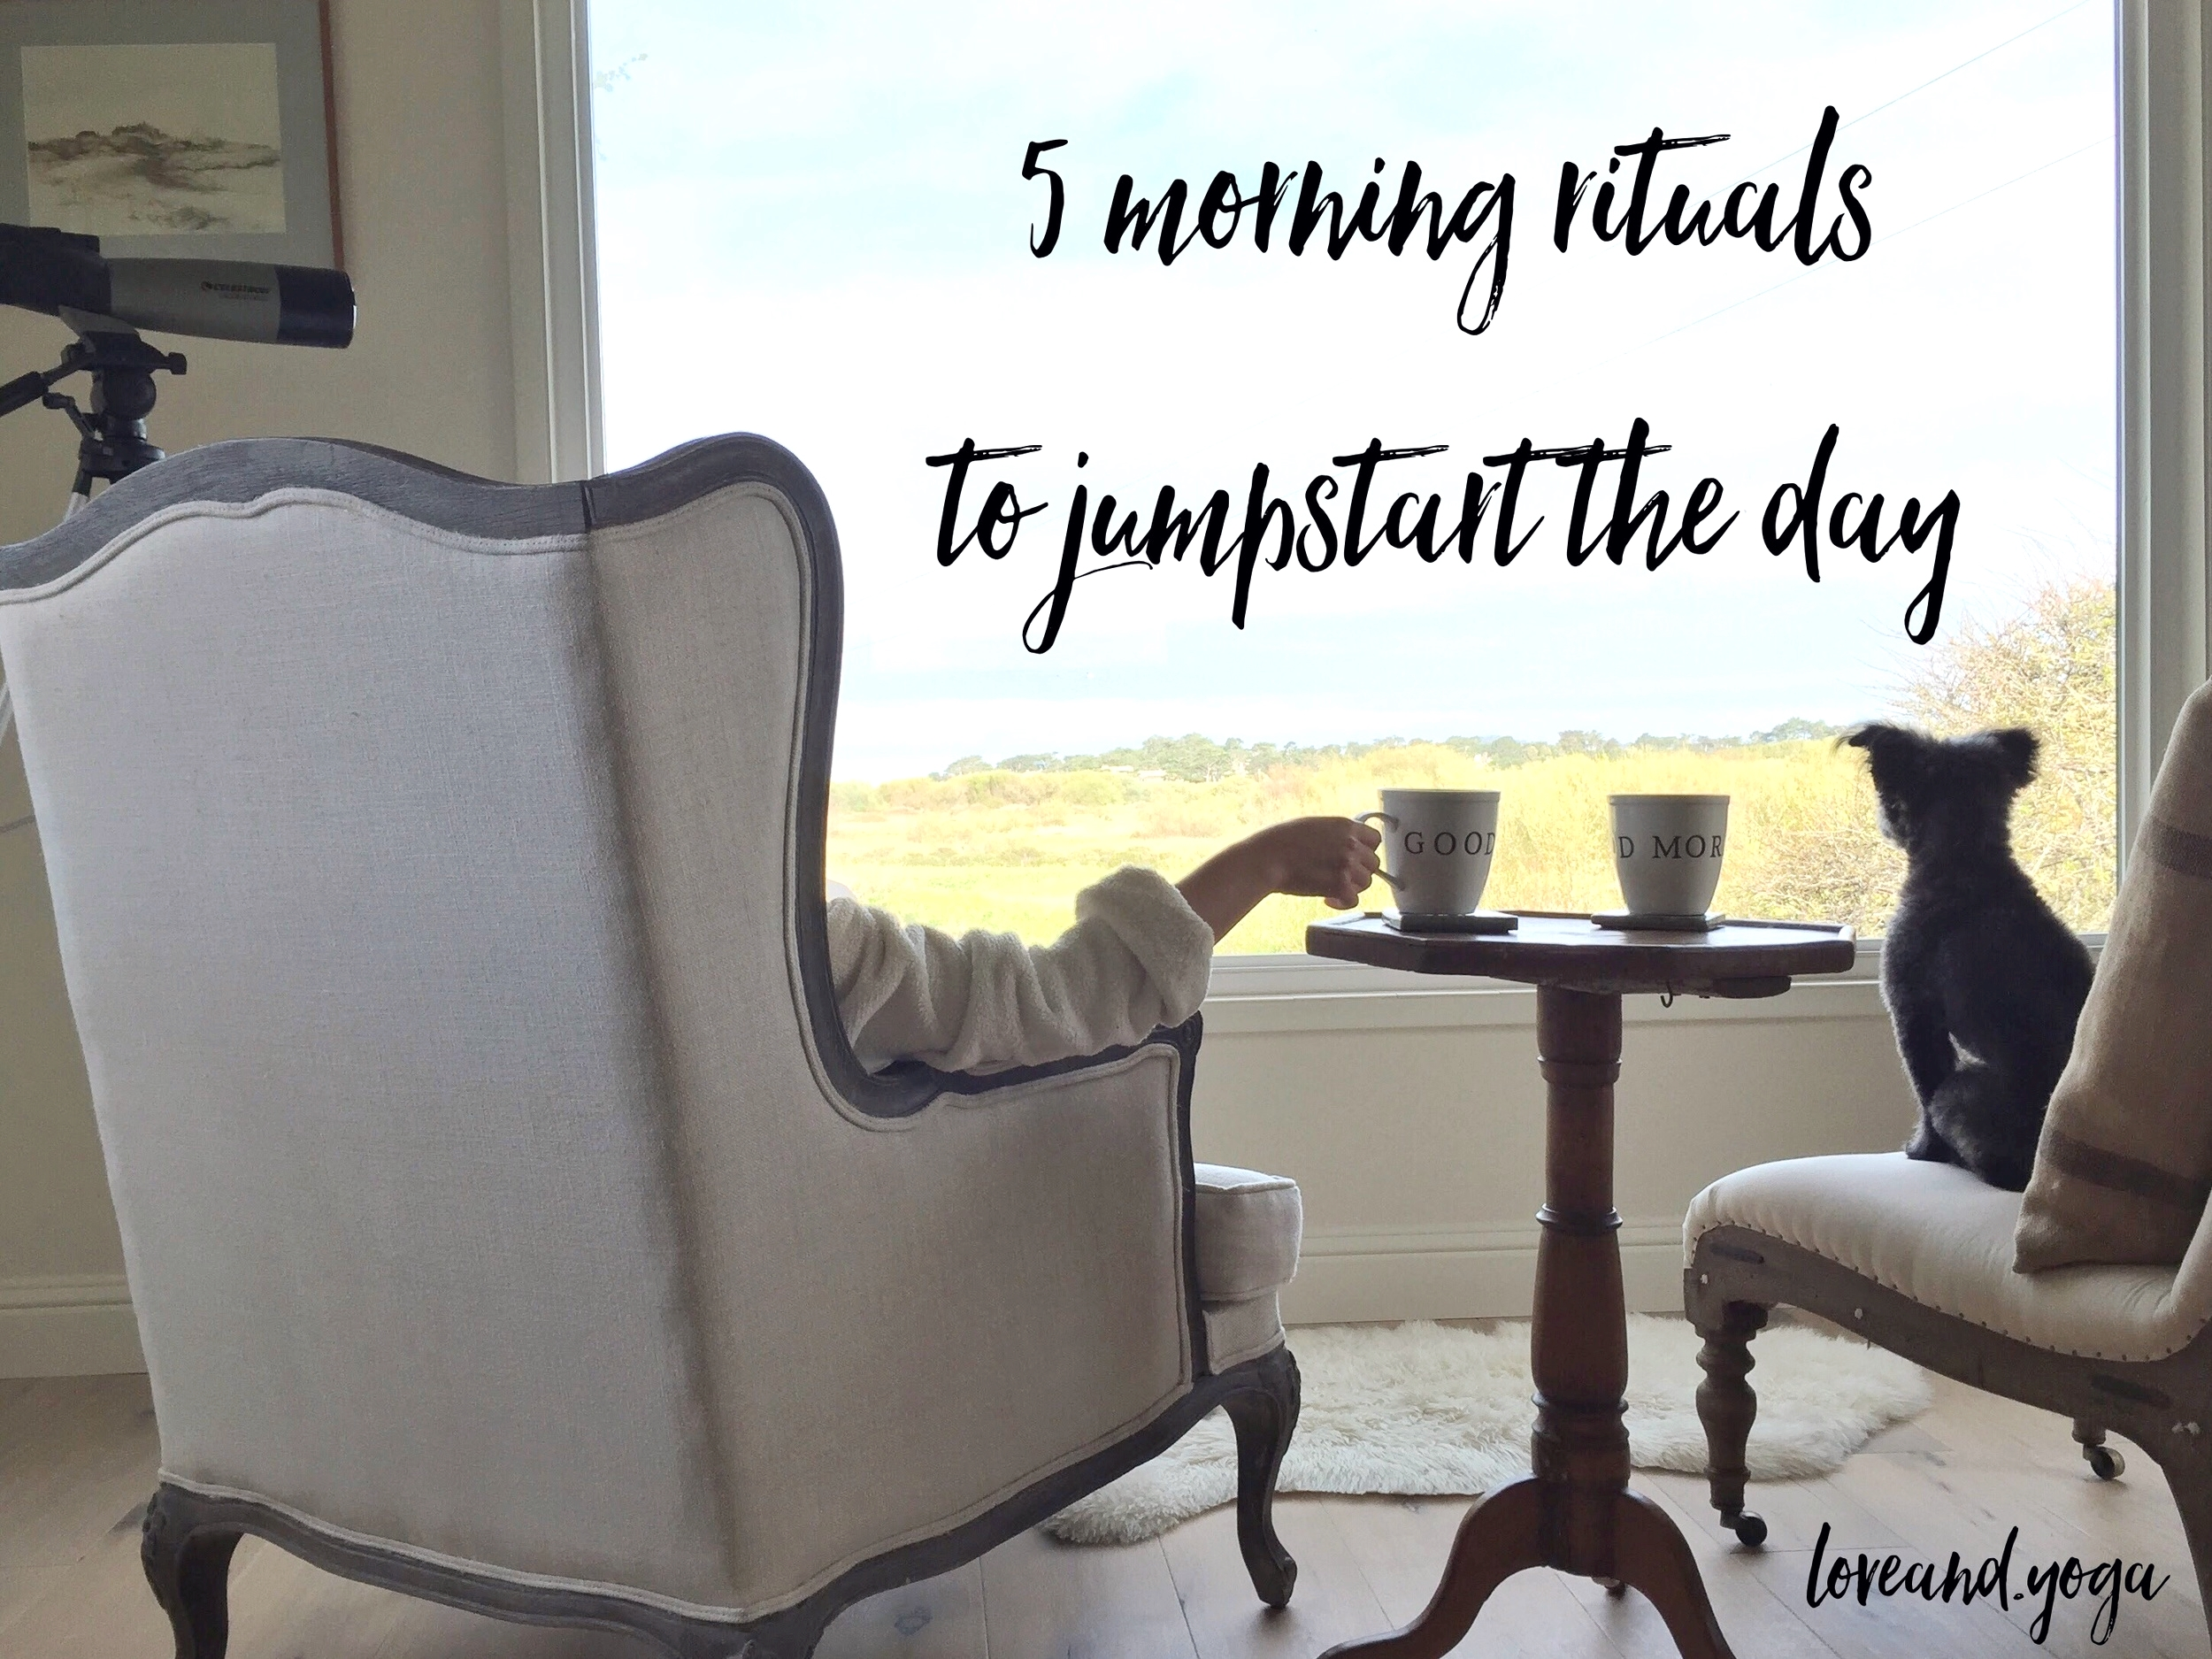 5 morning rituals to jumpstart the day